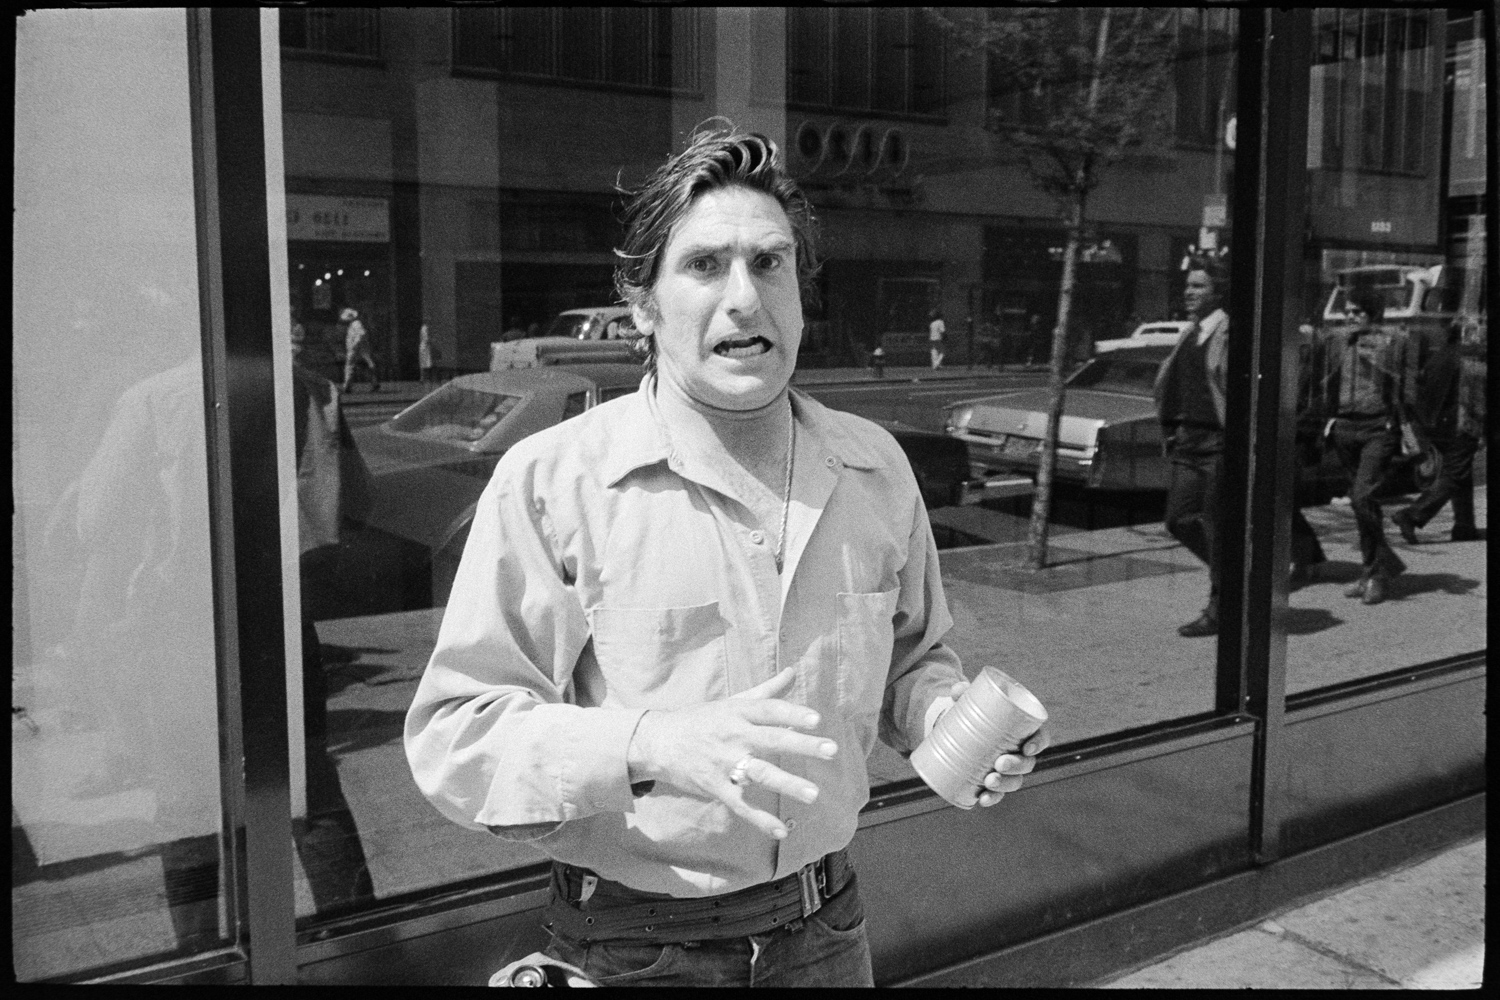 Street Photos, New York Street Photos In The '70s: The Original Opera Guy?, Mason Resnick Photography